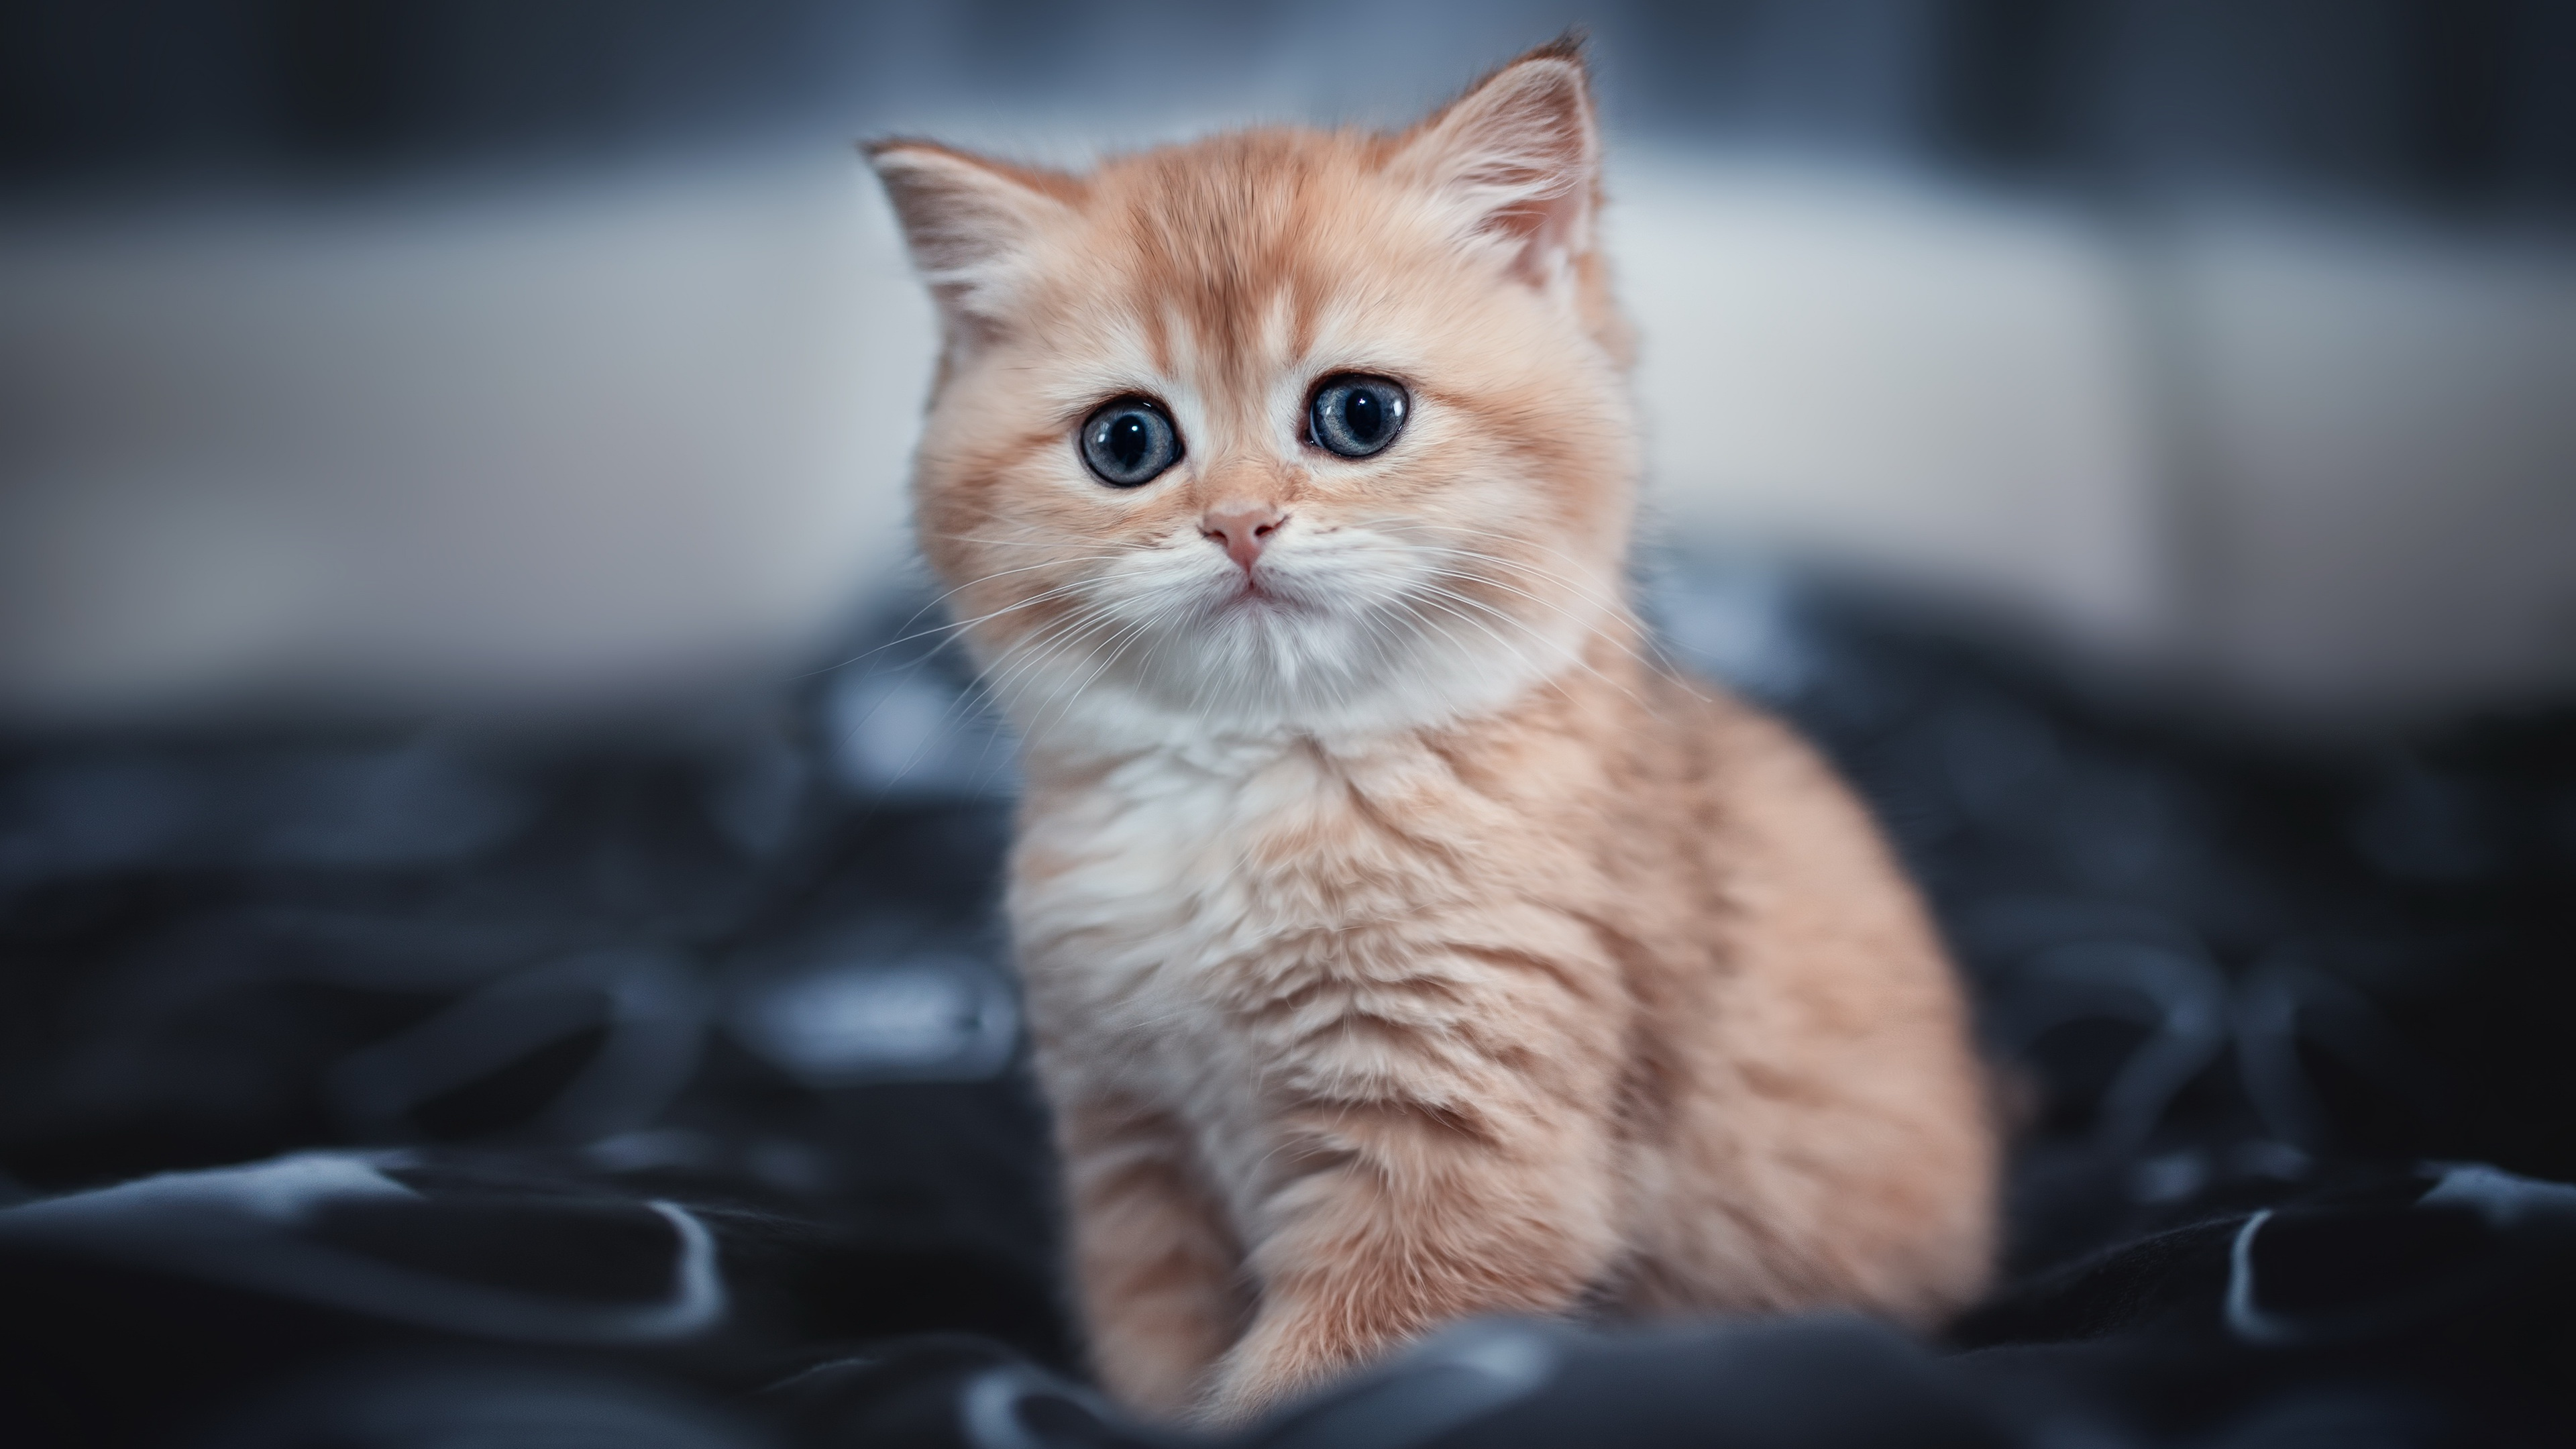 Wallpaper 4k Cute Kitten 4k Cute Kitten 4k Wallpapers